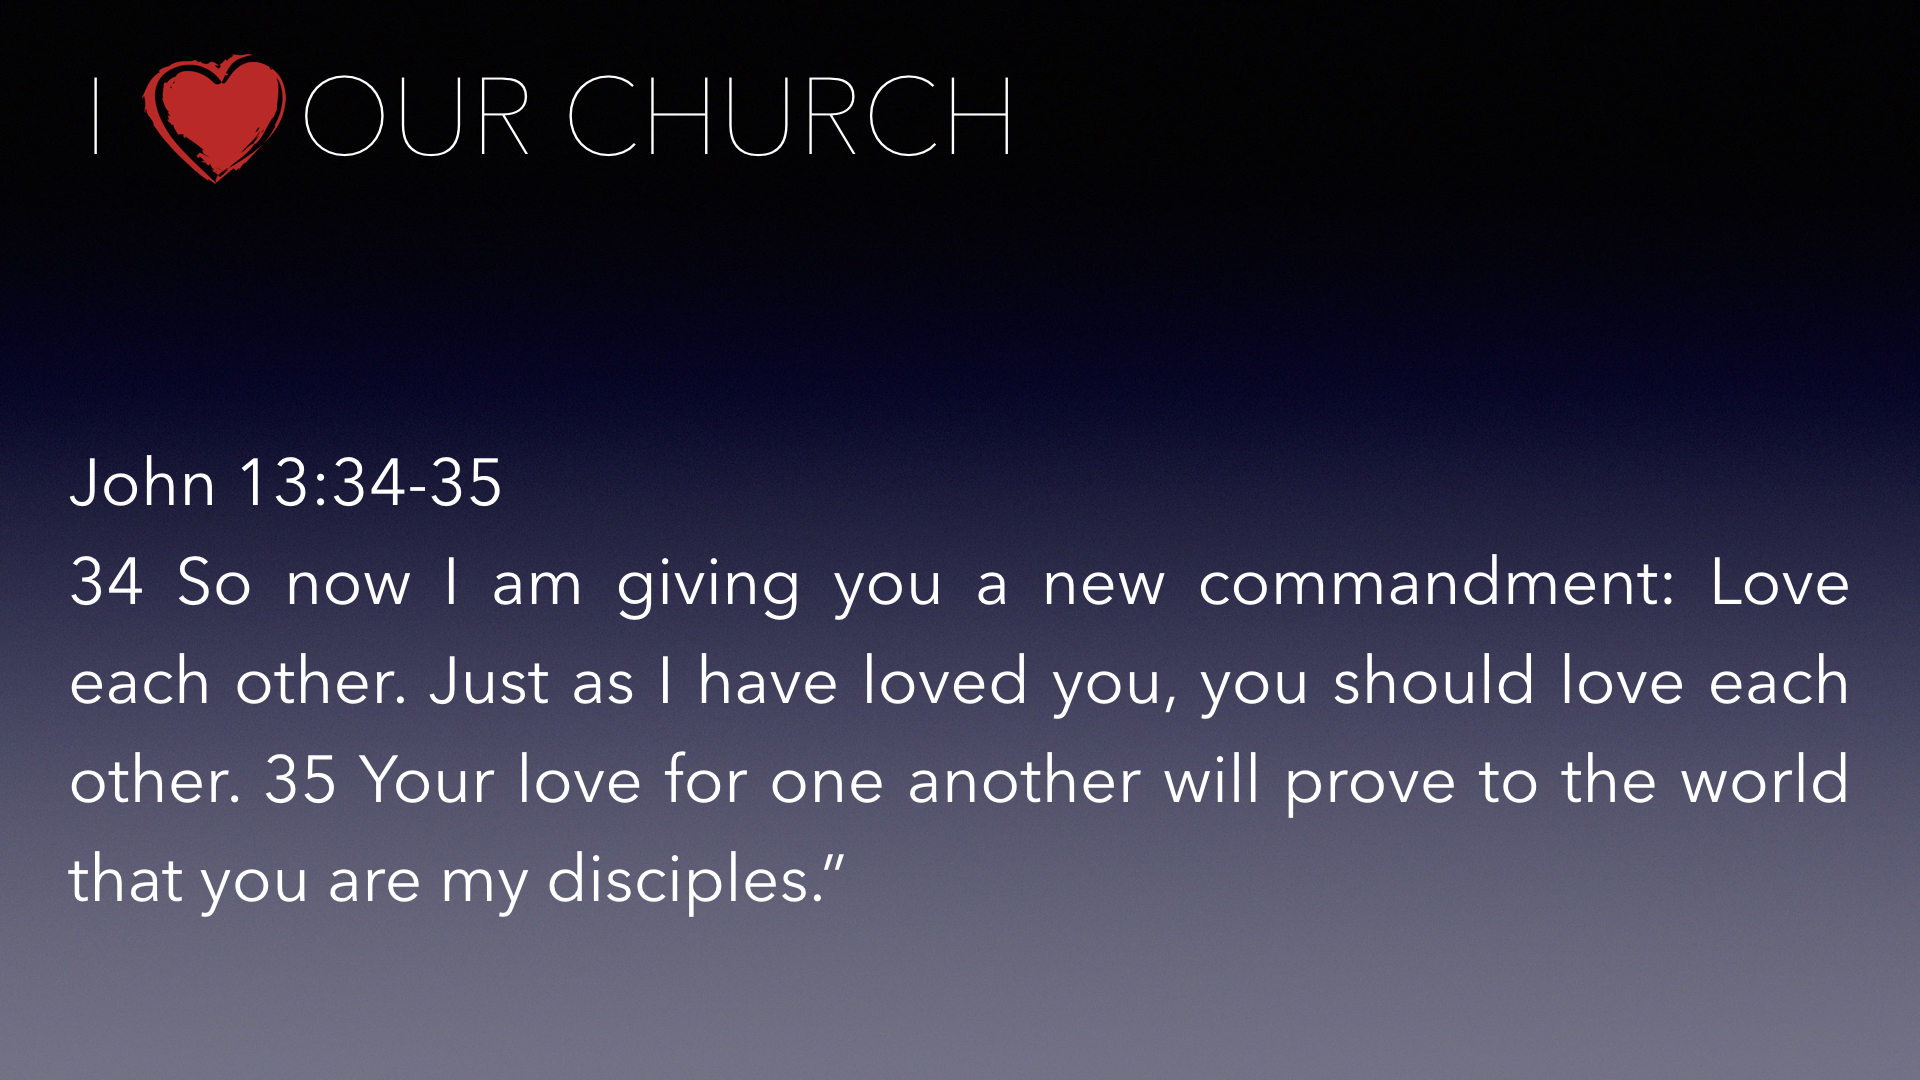 i-love-our-church-006